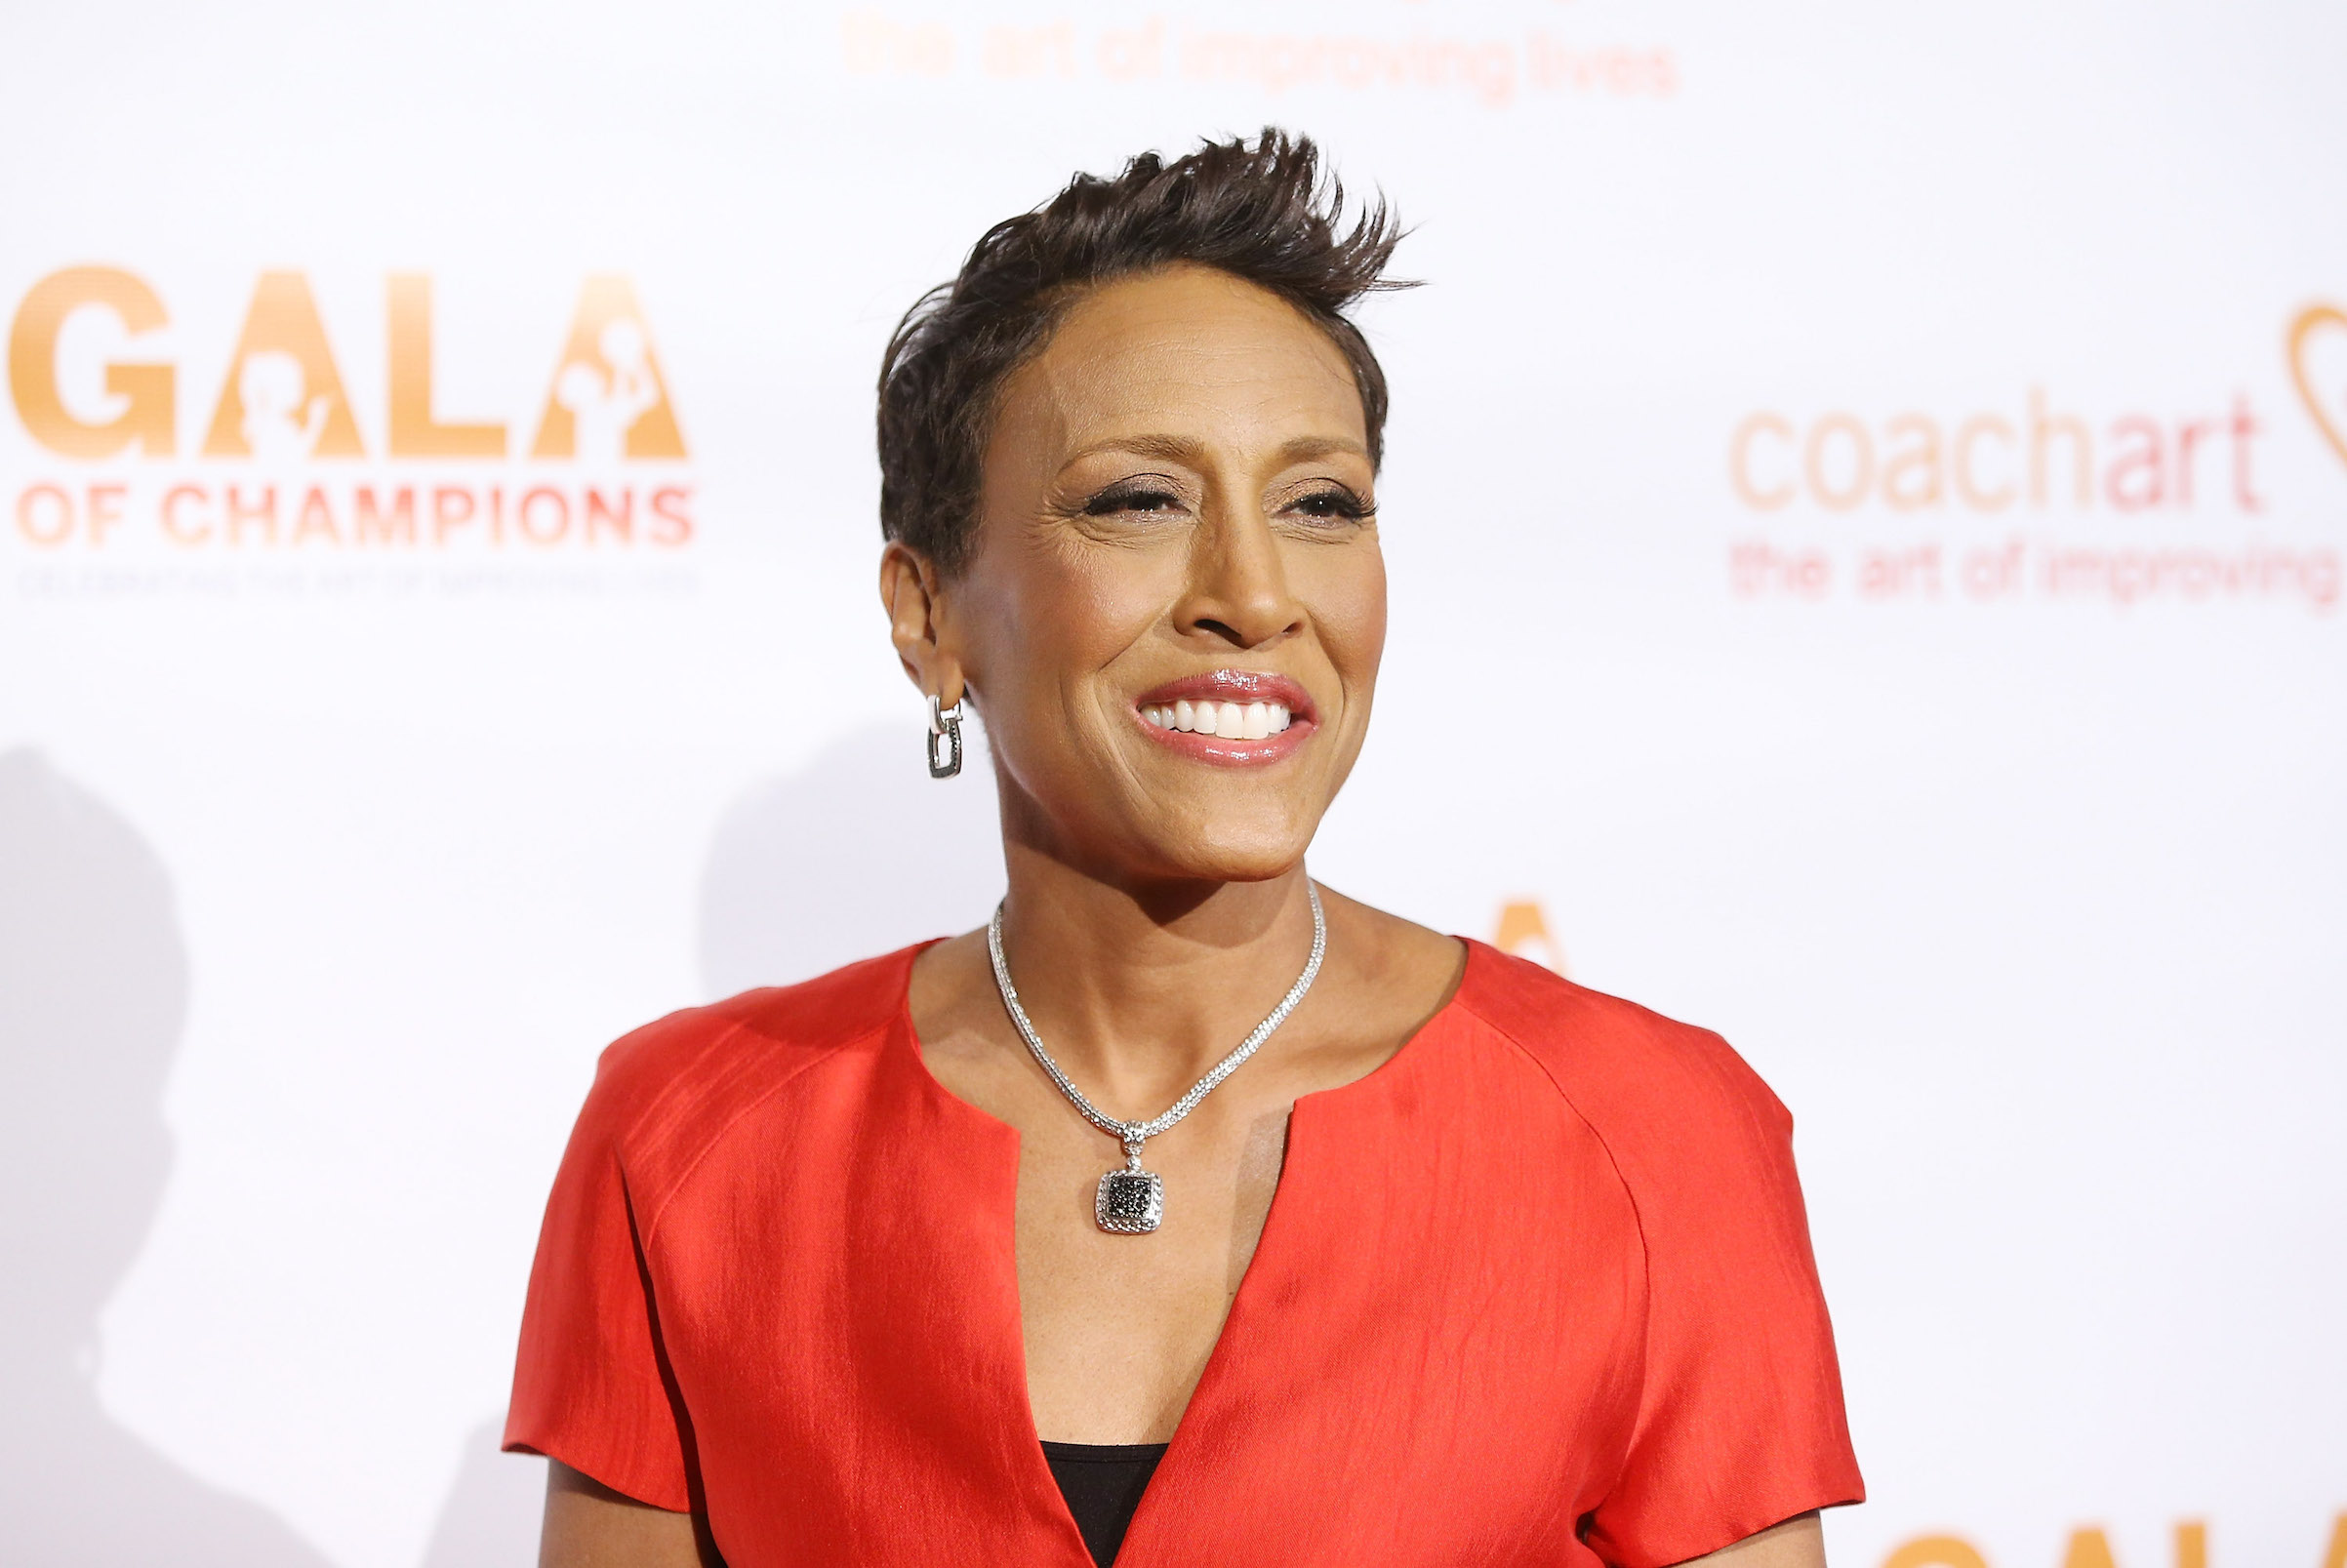 Robin Roberts arrives at the CoachArt Gala of Champions on Oct. 17, 2013 in Beverly Hills, California.